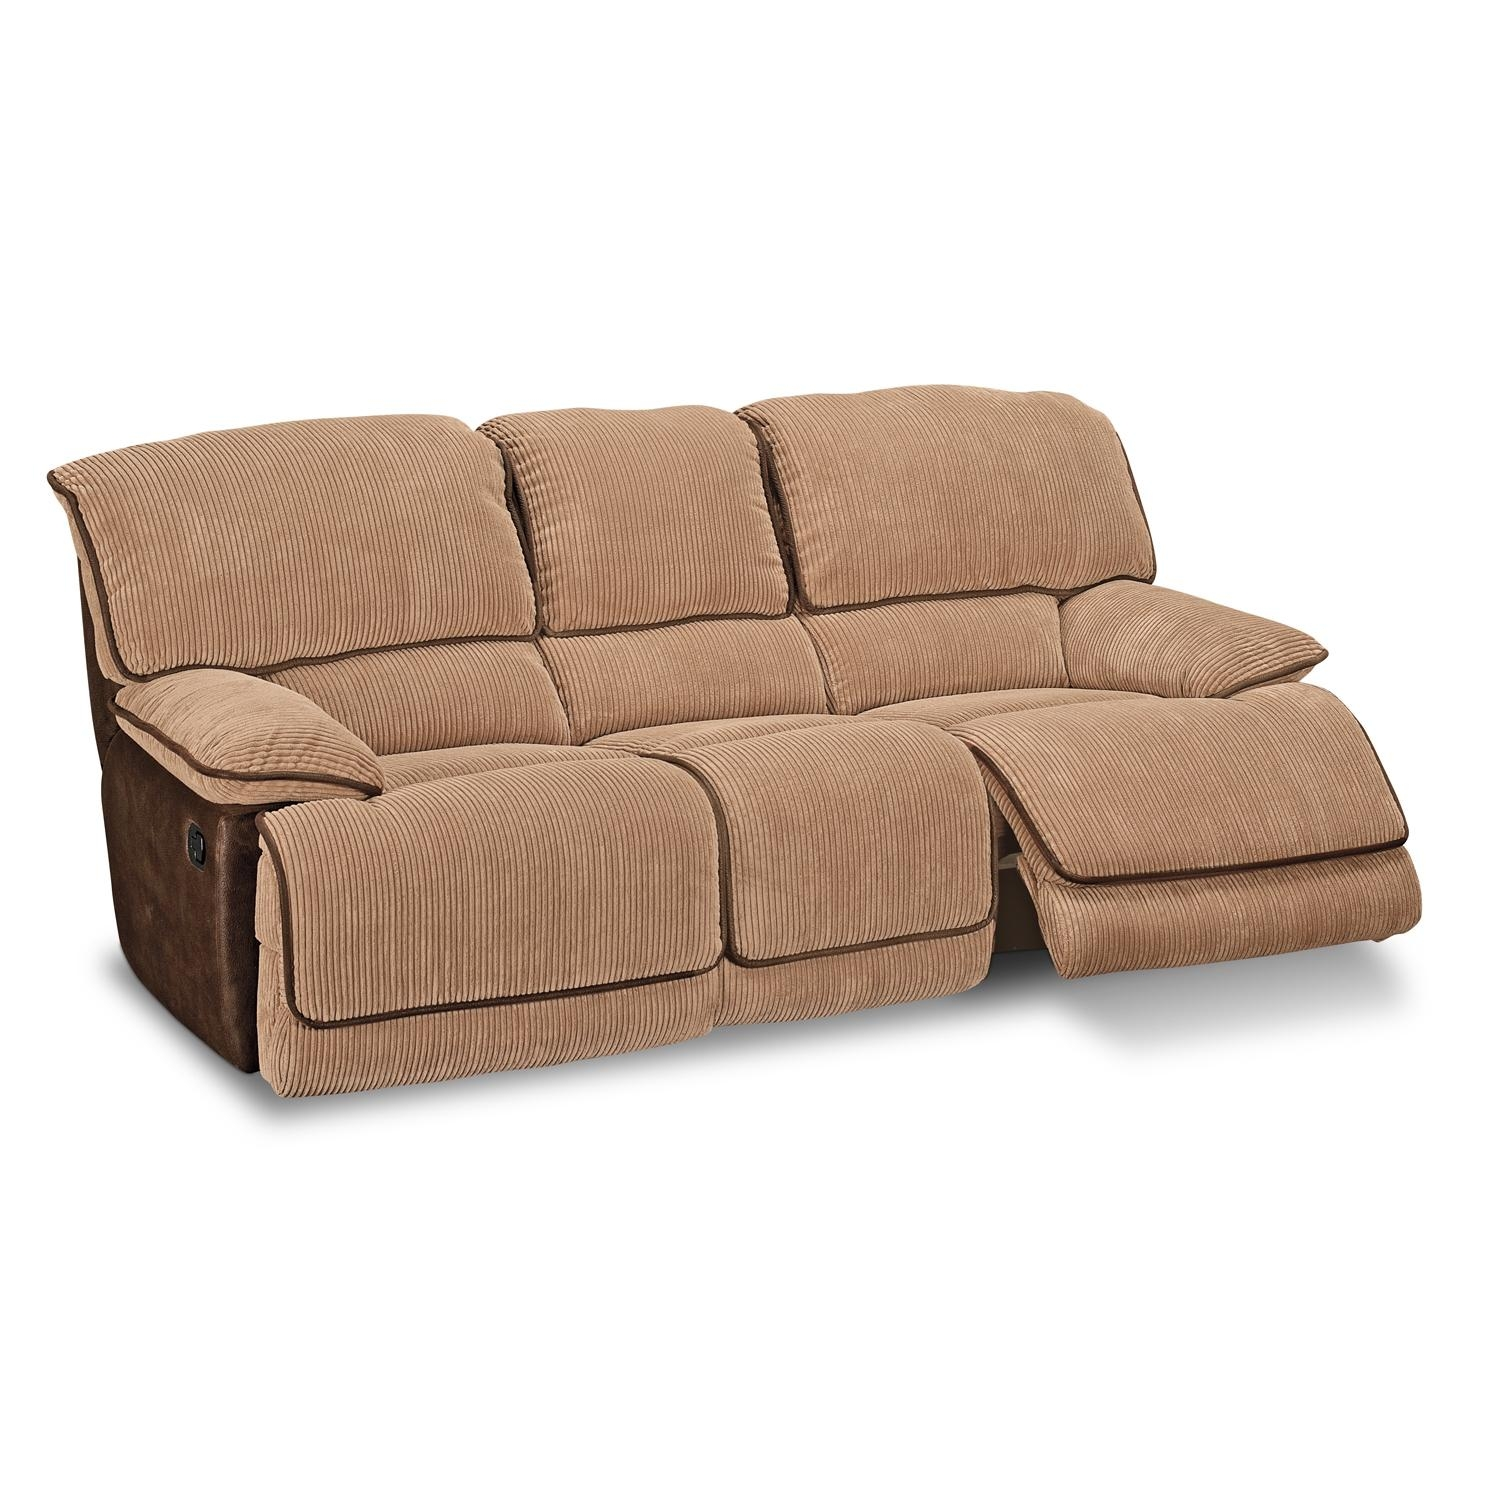 Slipcovers For Recliner Sofa | Sofa Gallery | Kengire In Slipcover For Reclining Sofas (Image 15 of 20)